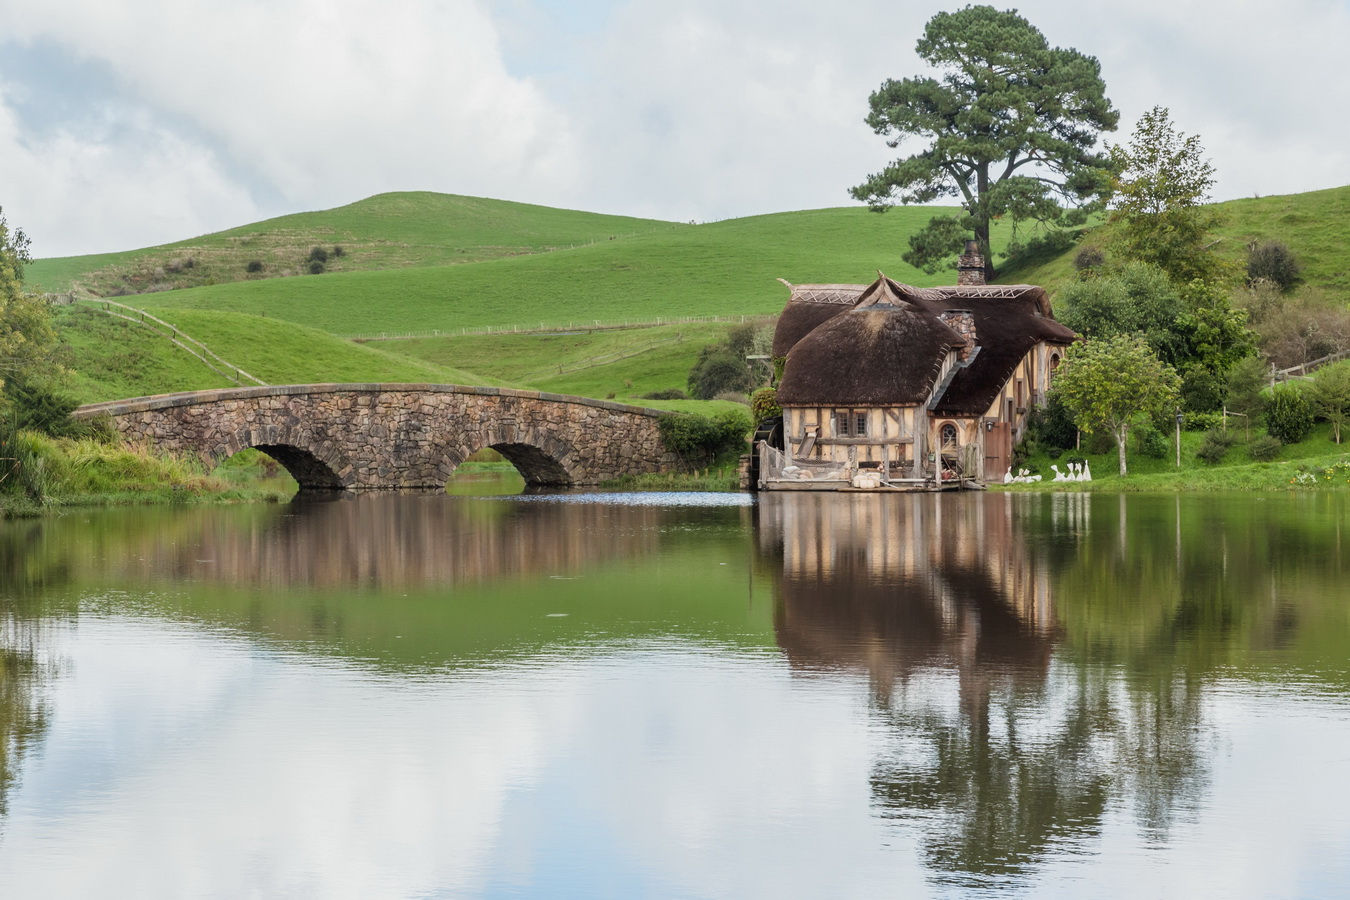 mill, lake,bridge,The Hobbiton, The Shire,Хоббитшир, Удел, Хоббитания, Заселье, Край,Matamata, North Island ,New Zealand